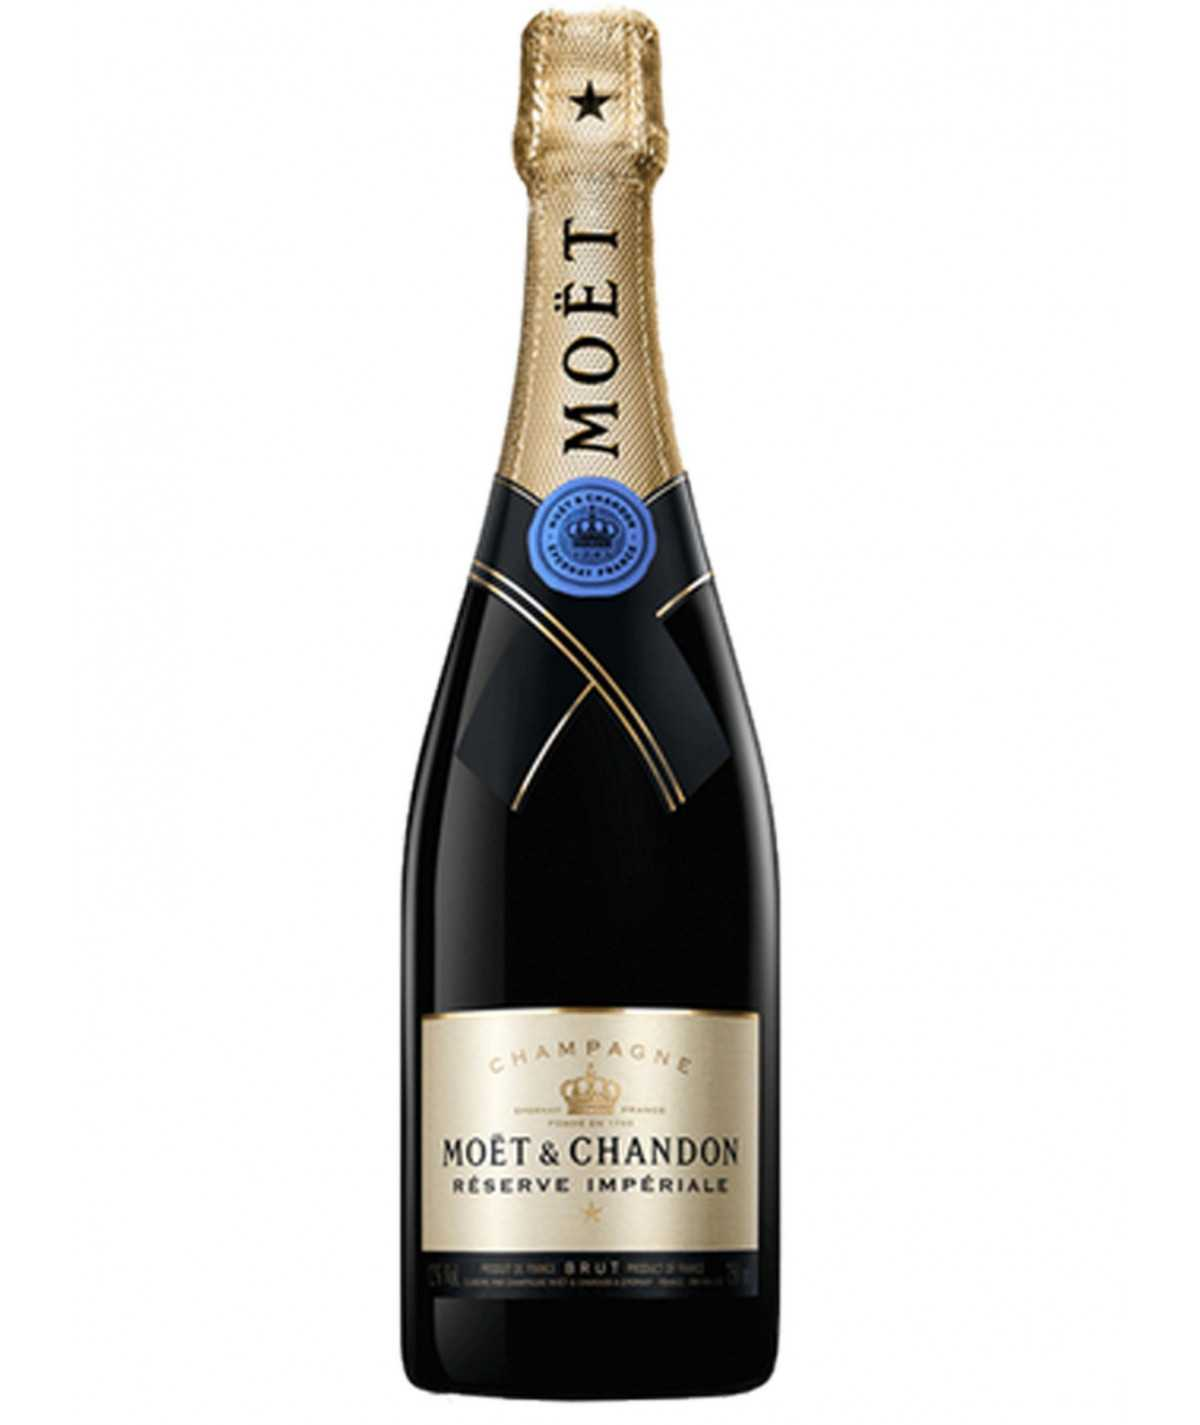 MOET & CHANDON Reserve Imperiale champagne